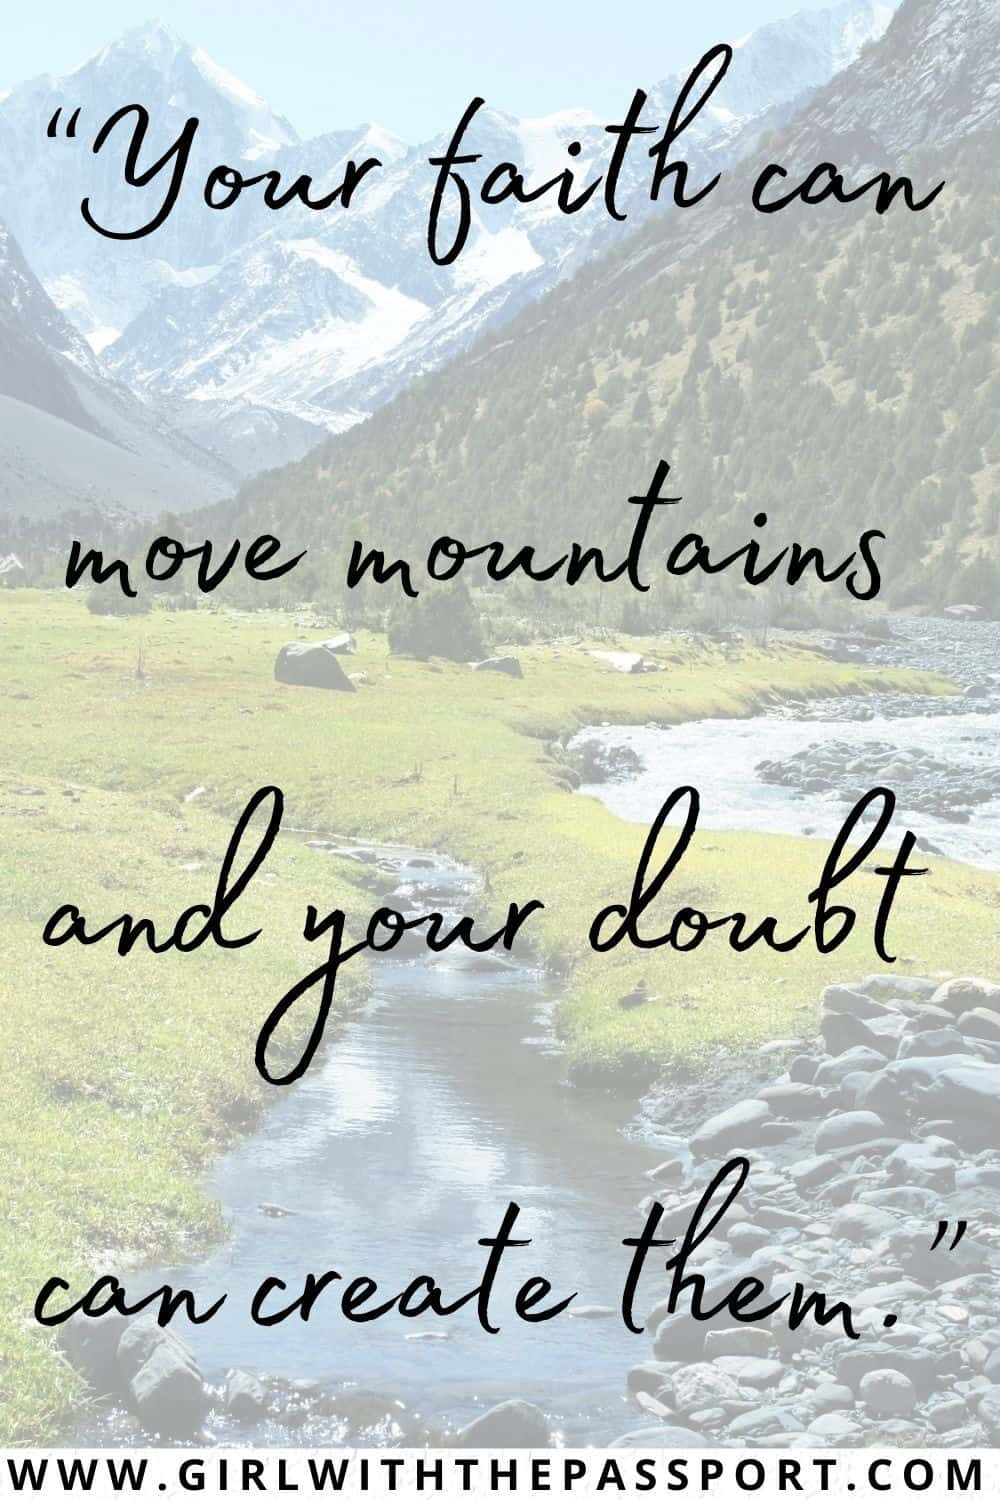 Best move mountains quotes